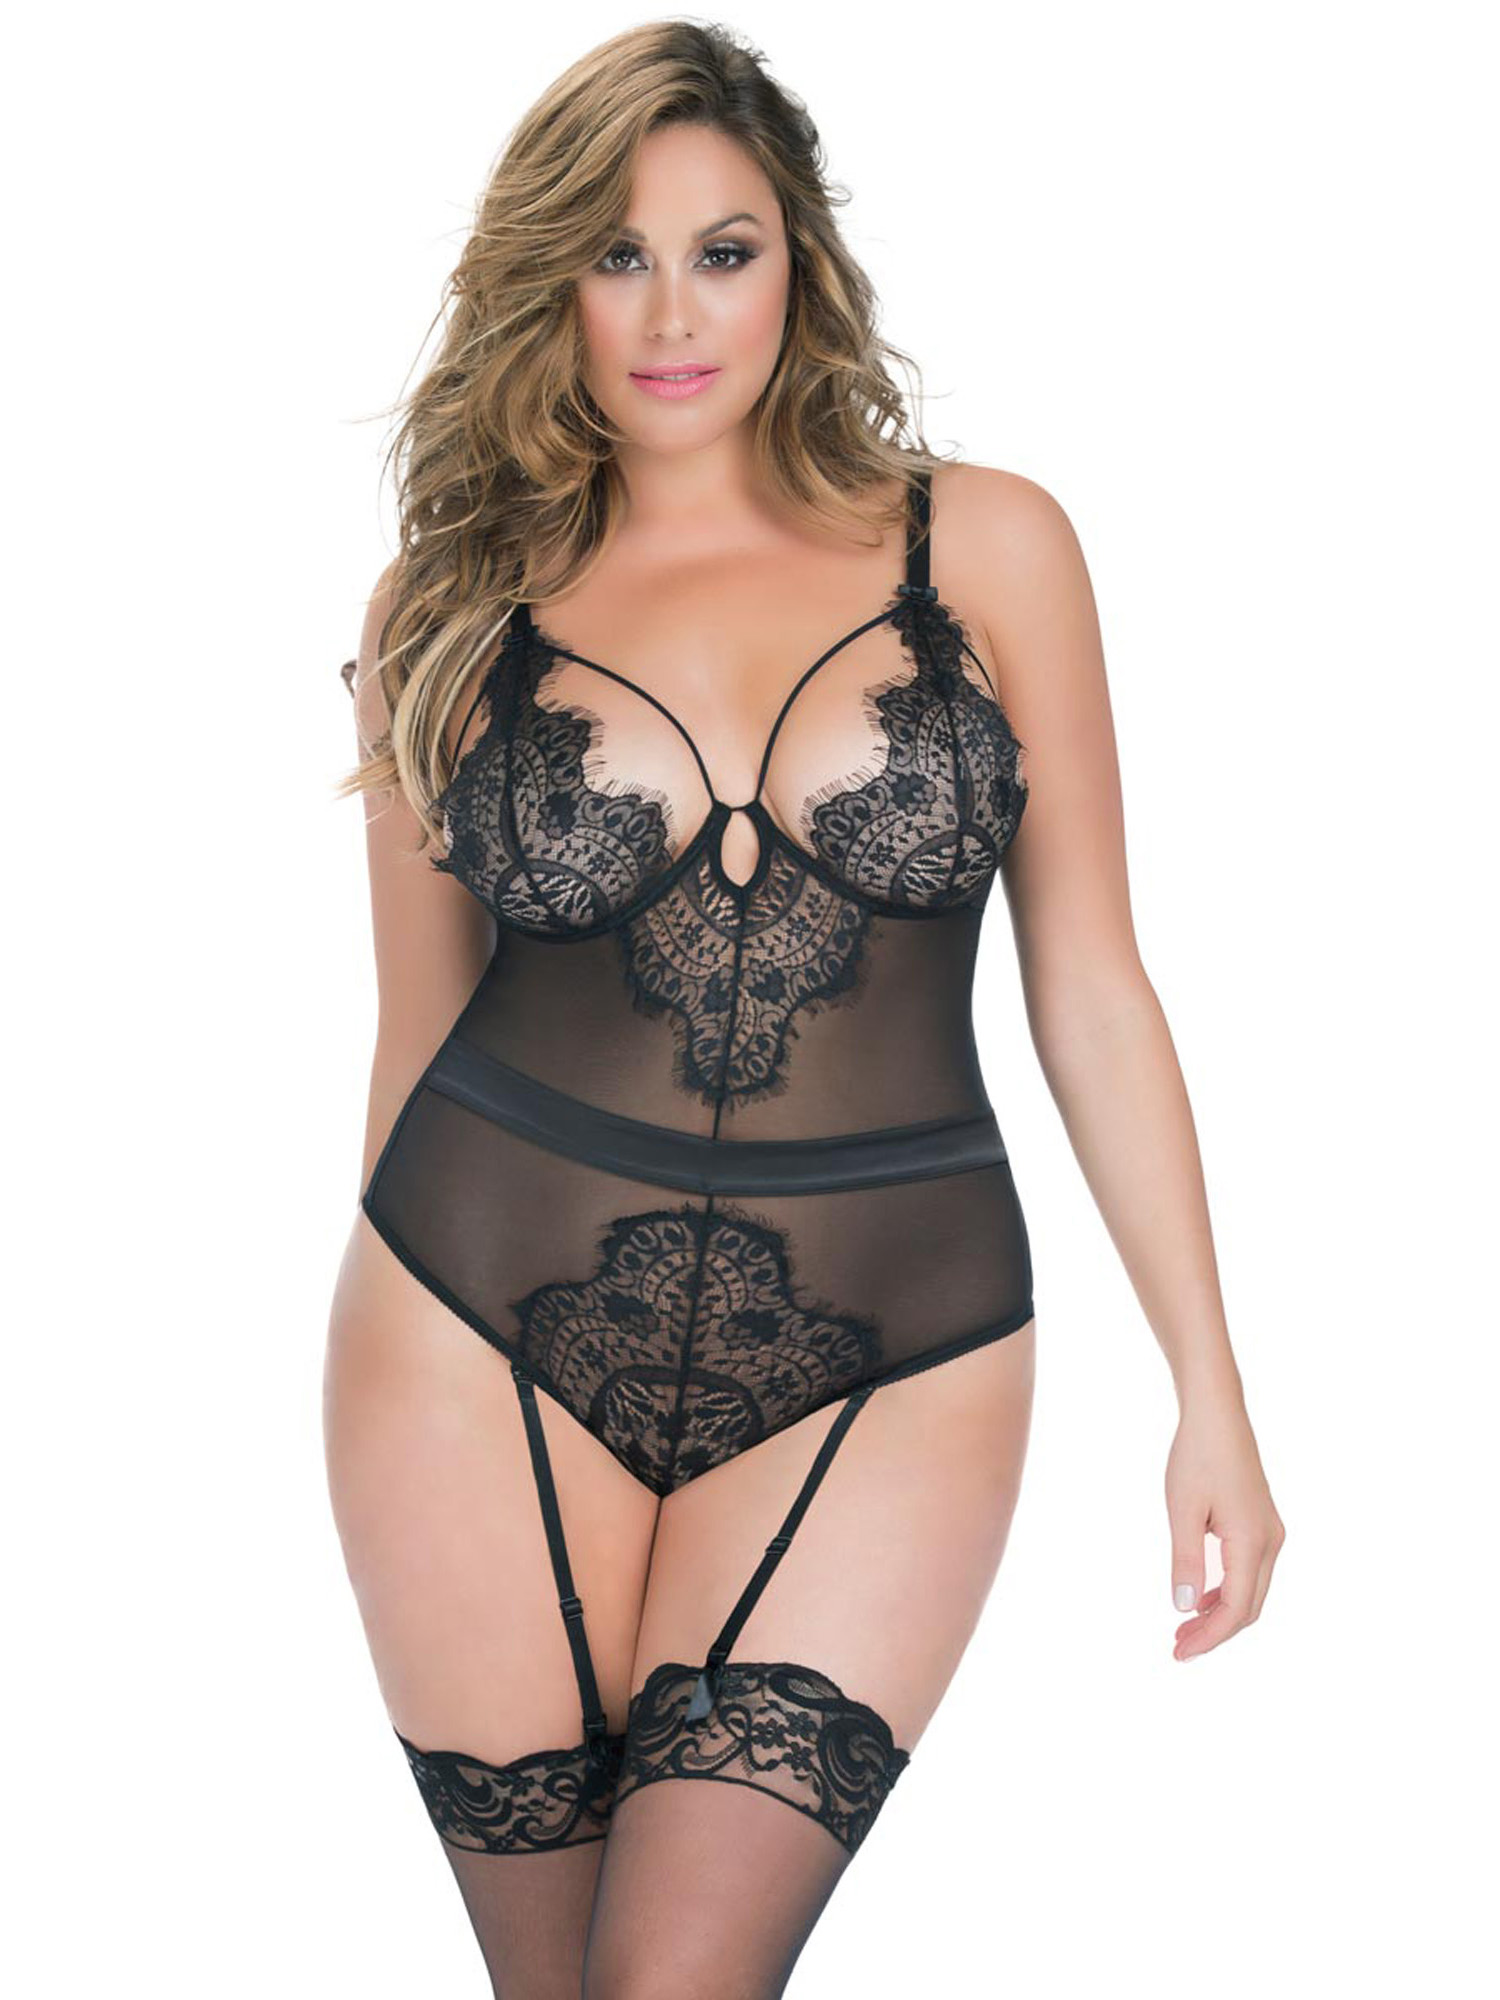 Full Figure BBW Plus Size Eyelash Lace Teddy Lingerie | eBay